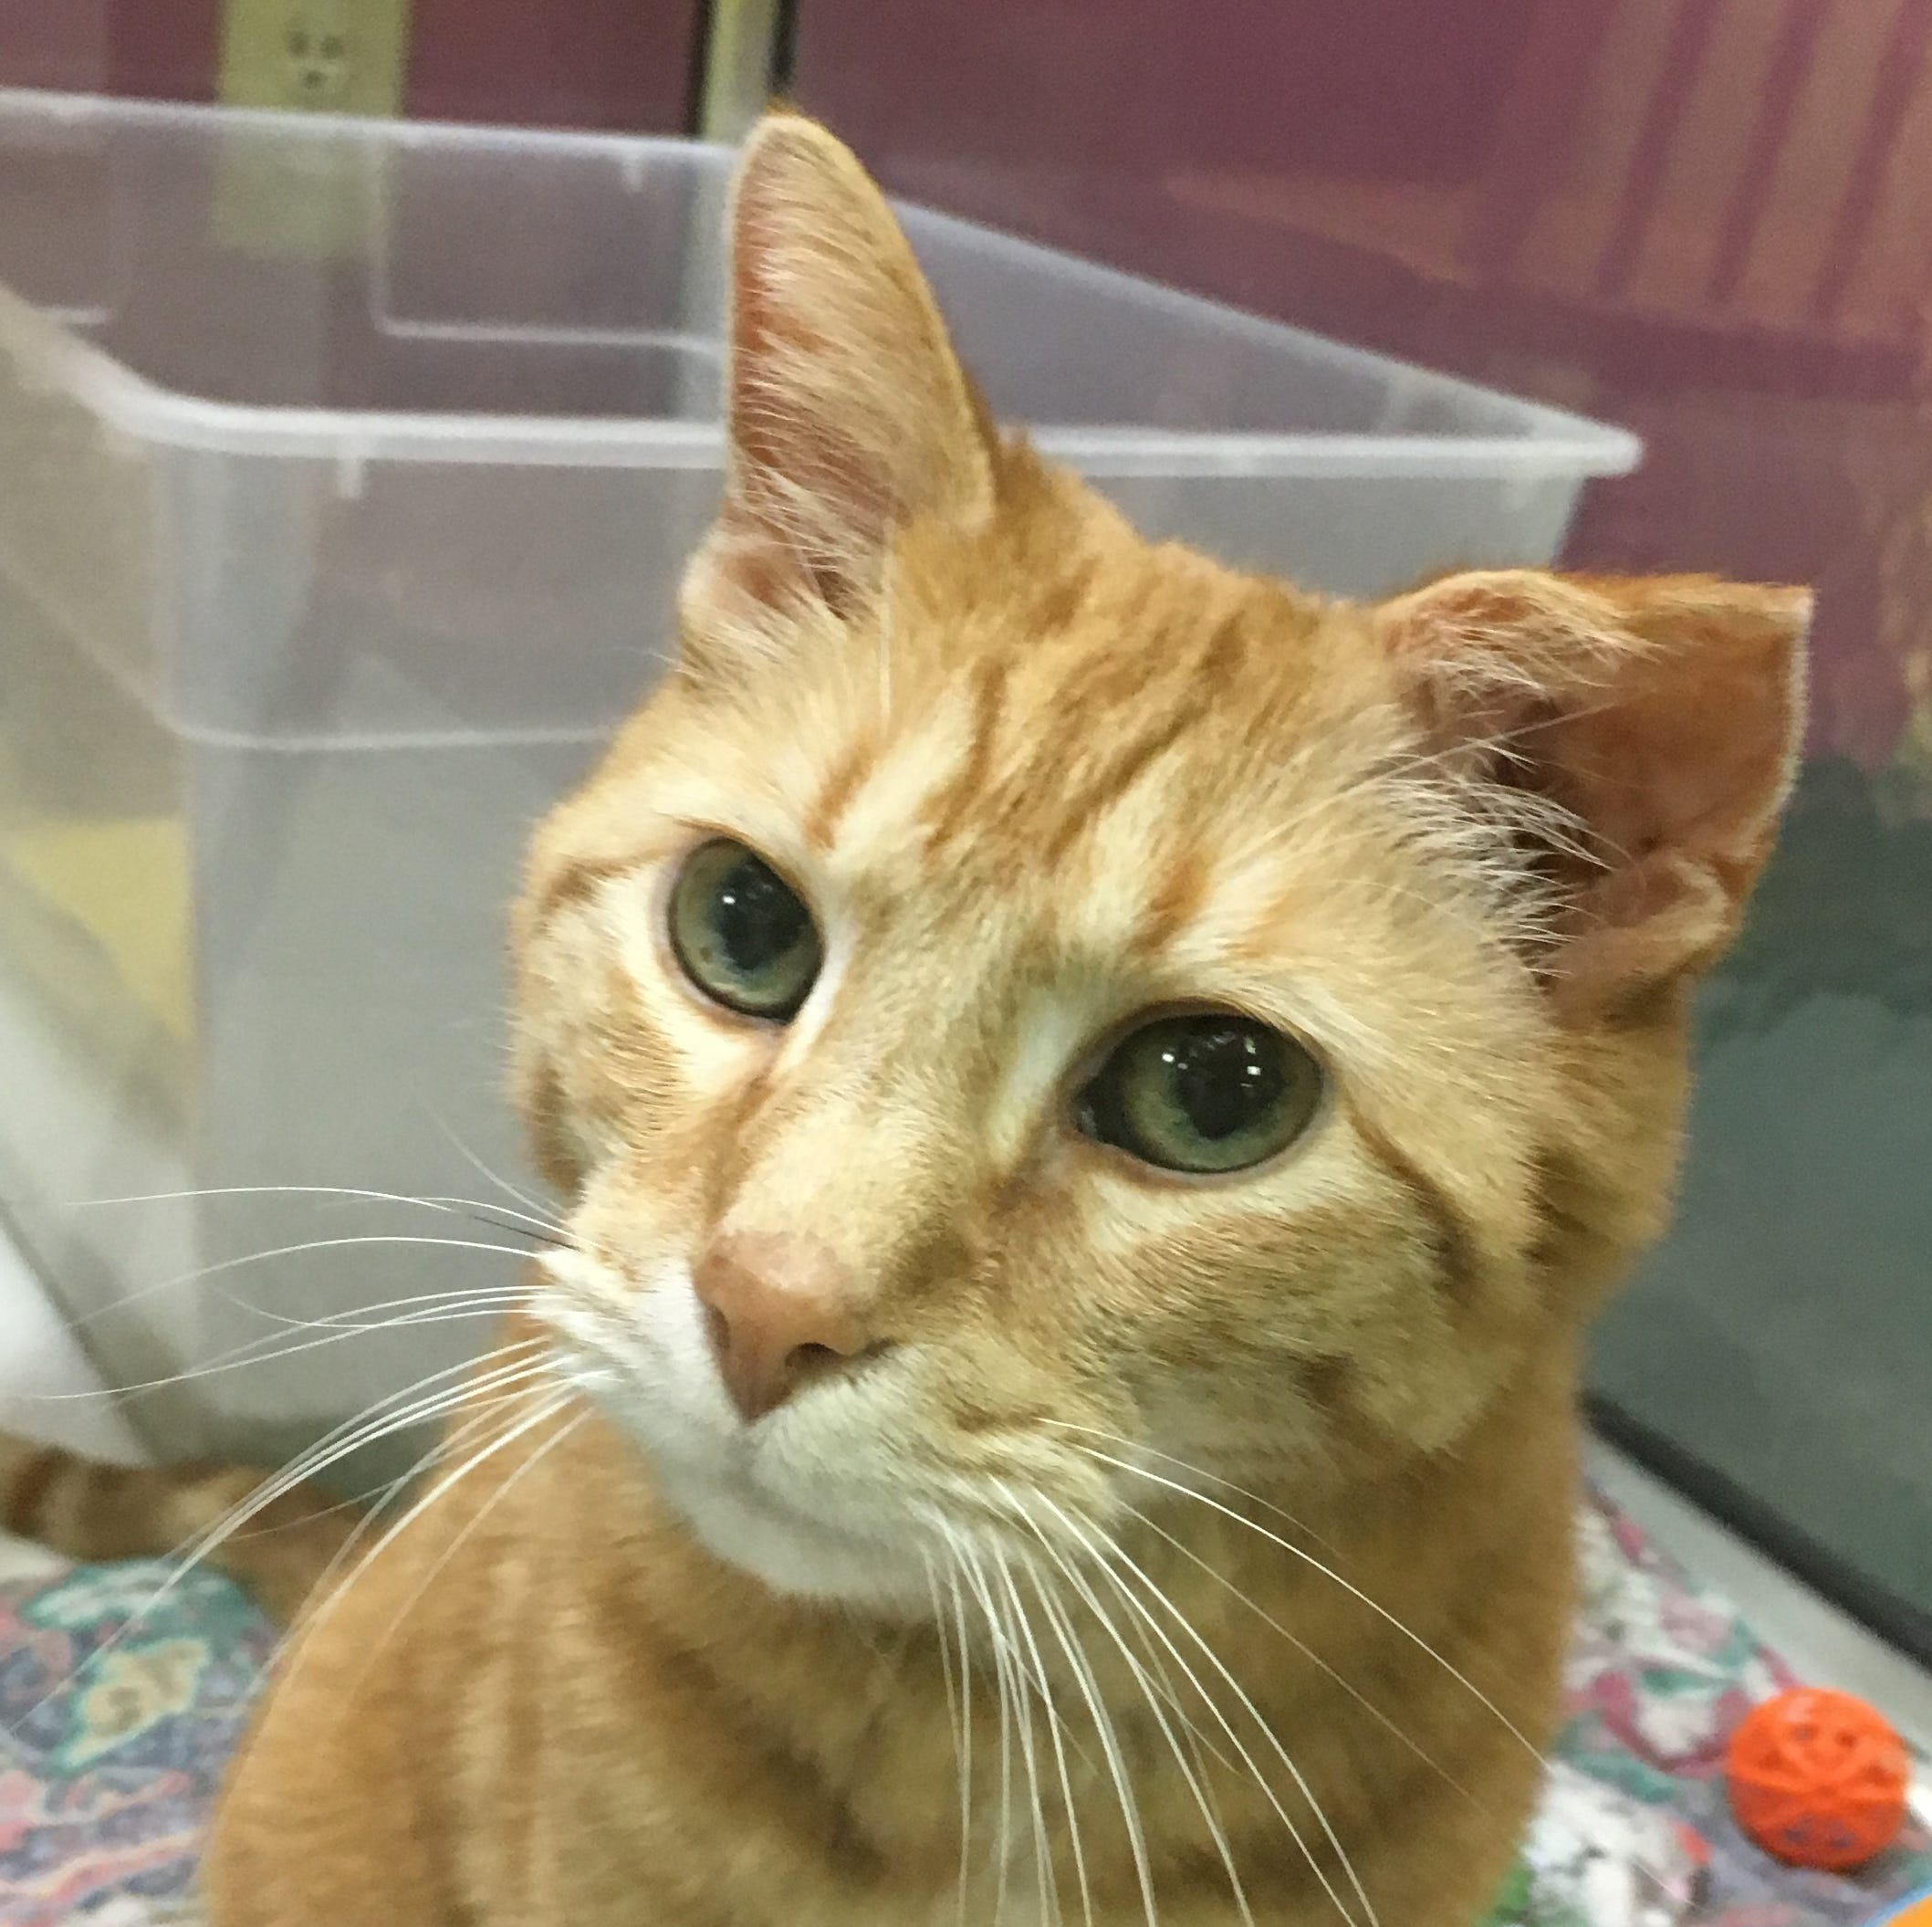 Oshkosh Northwestern Pet of the Week: Oscar the cat is looking for a 'grumpy old man'